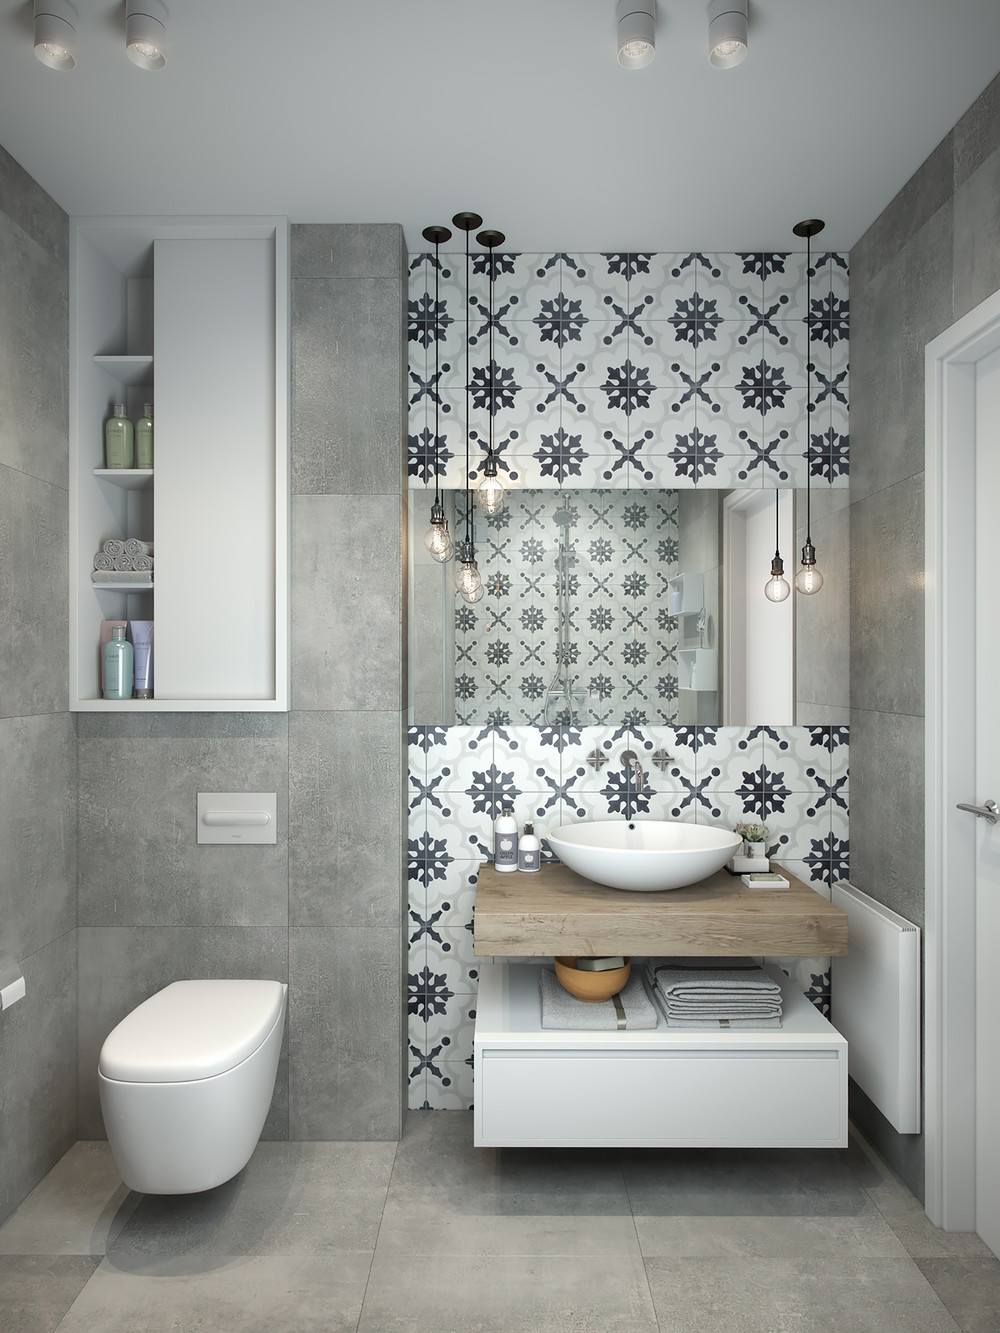 How To Decorate Simple Small Apartment Design Become Looks ... on Bathroom Ideas Apartment  id=42047